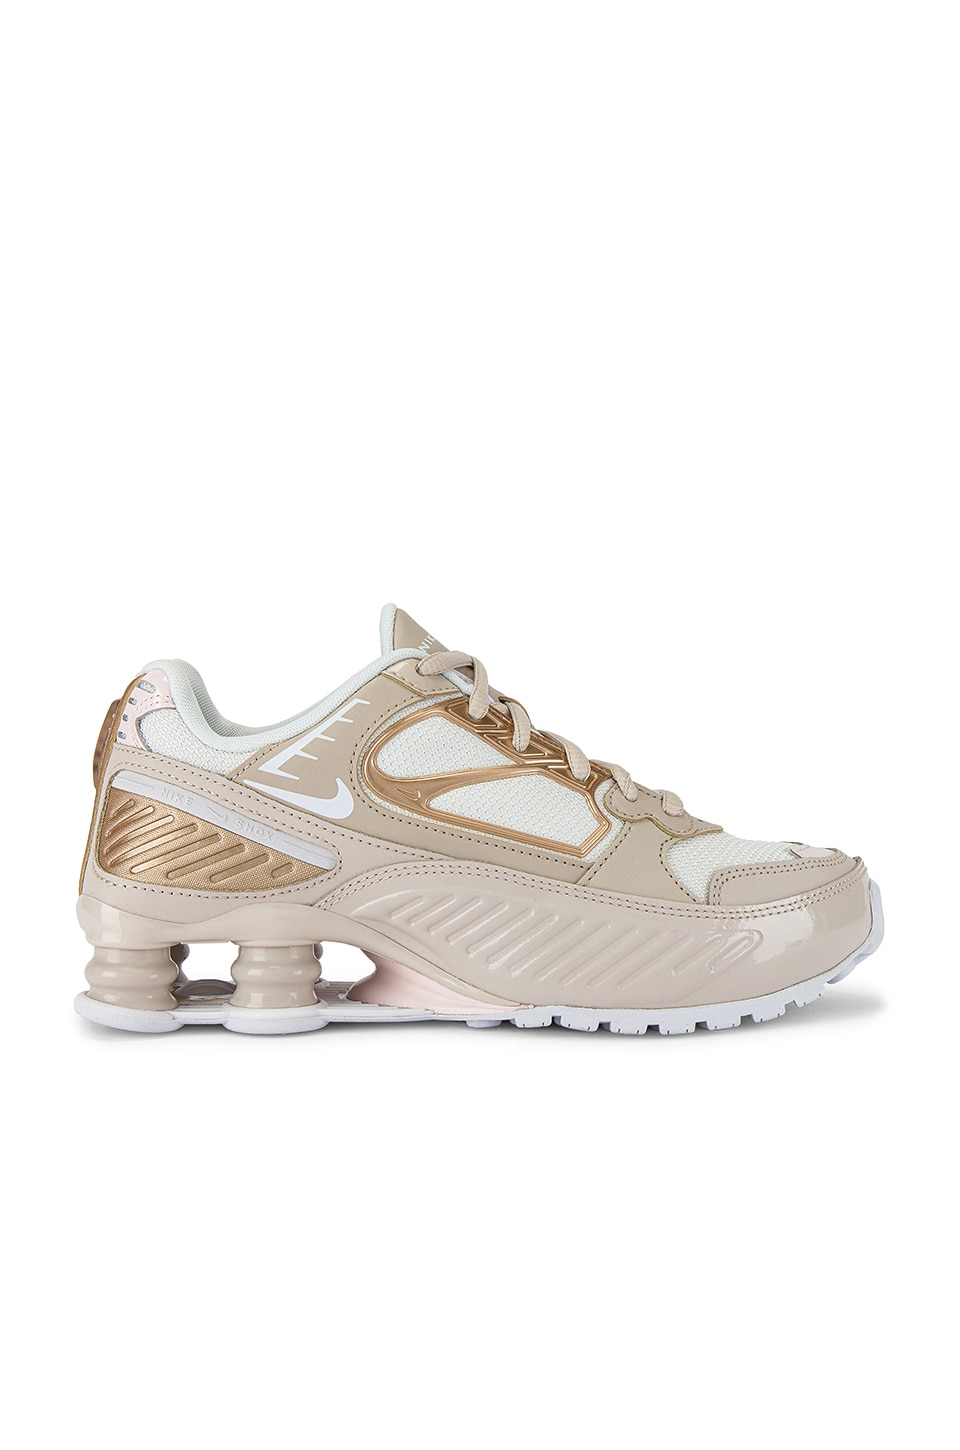 Nike Shox Enigma Sneaker in Desert Sand, White Summit & Soft Pink